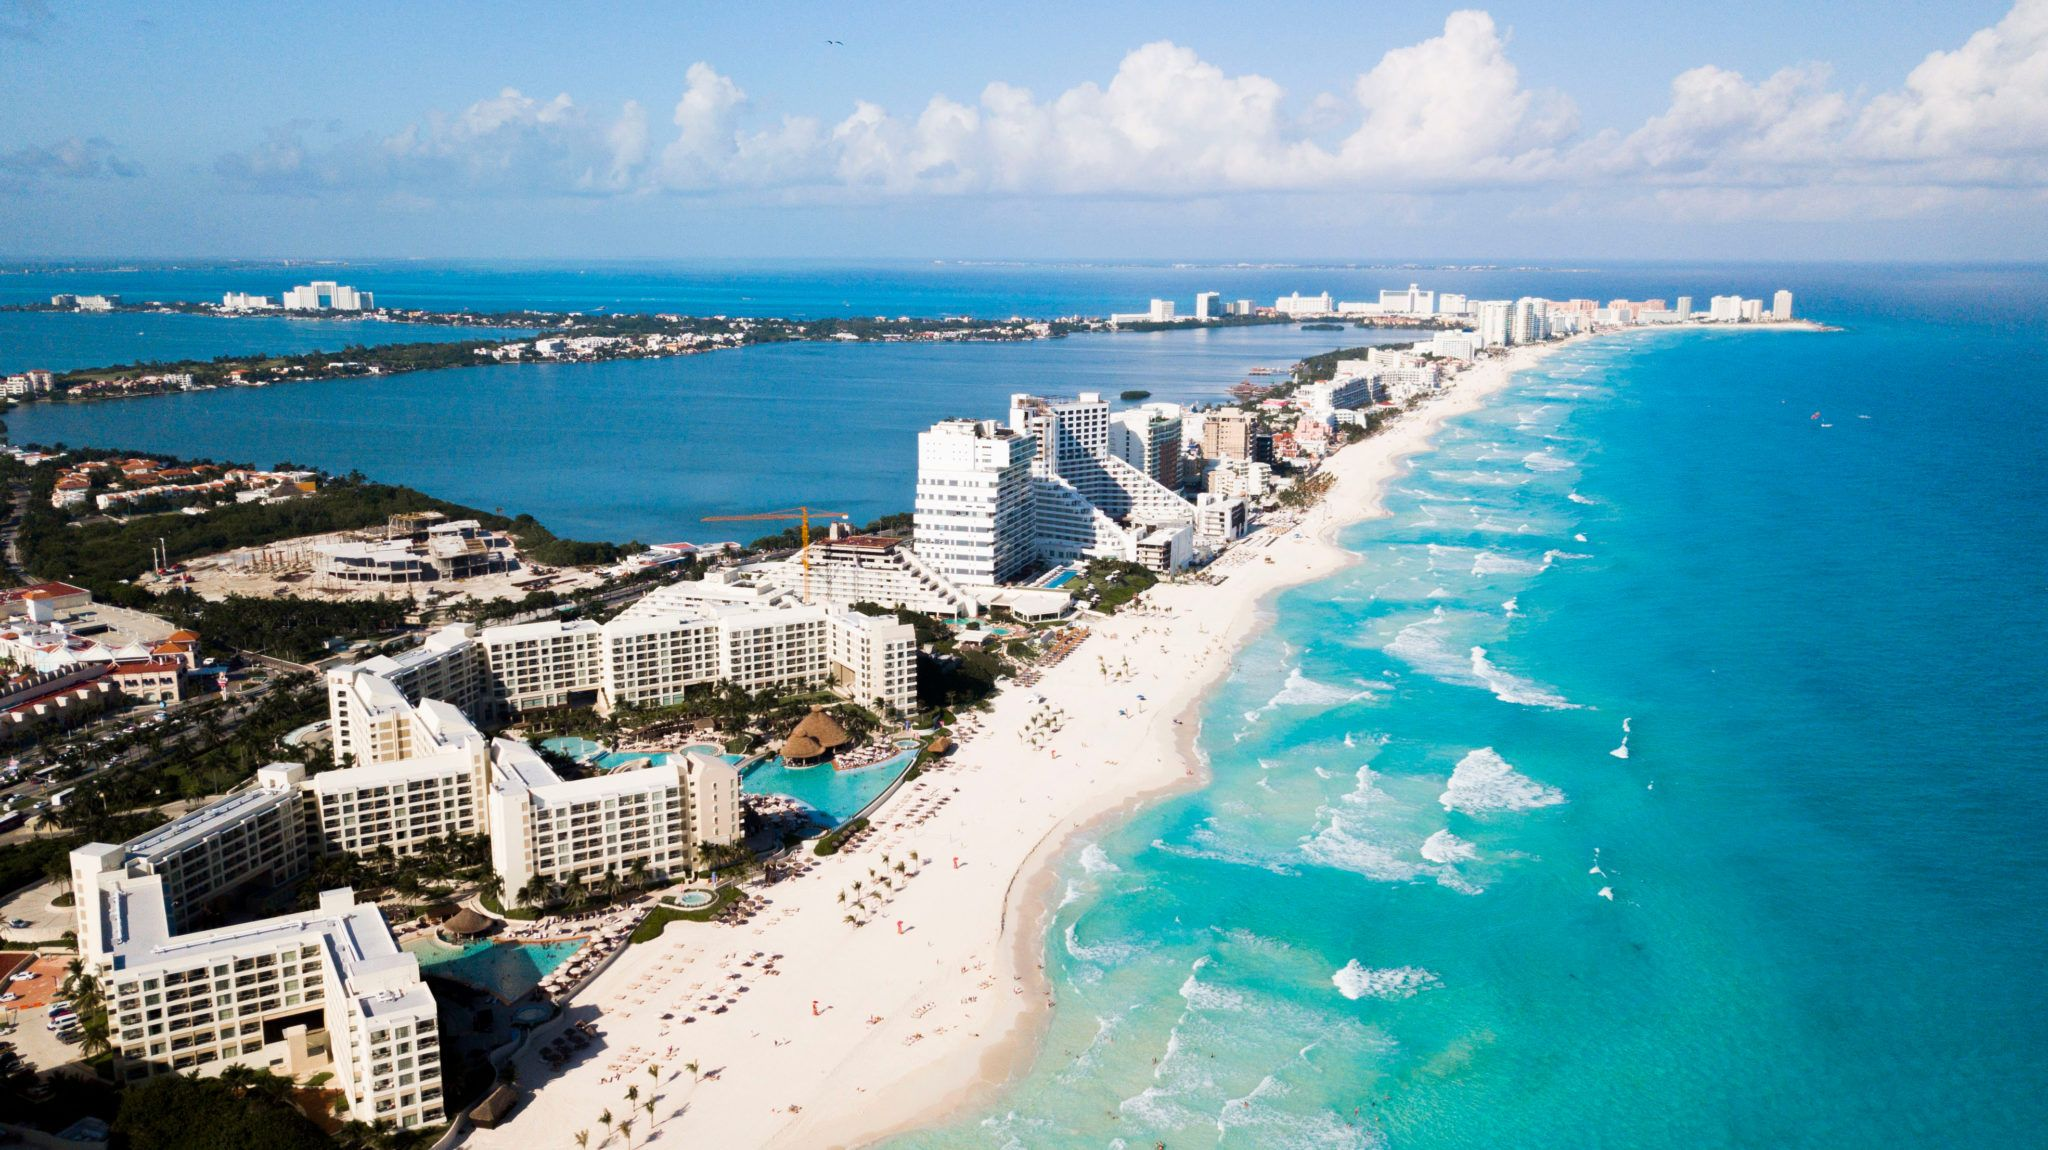 Cancun disappointing tourist attraction